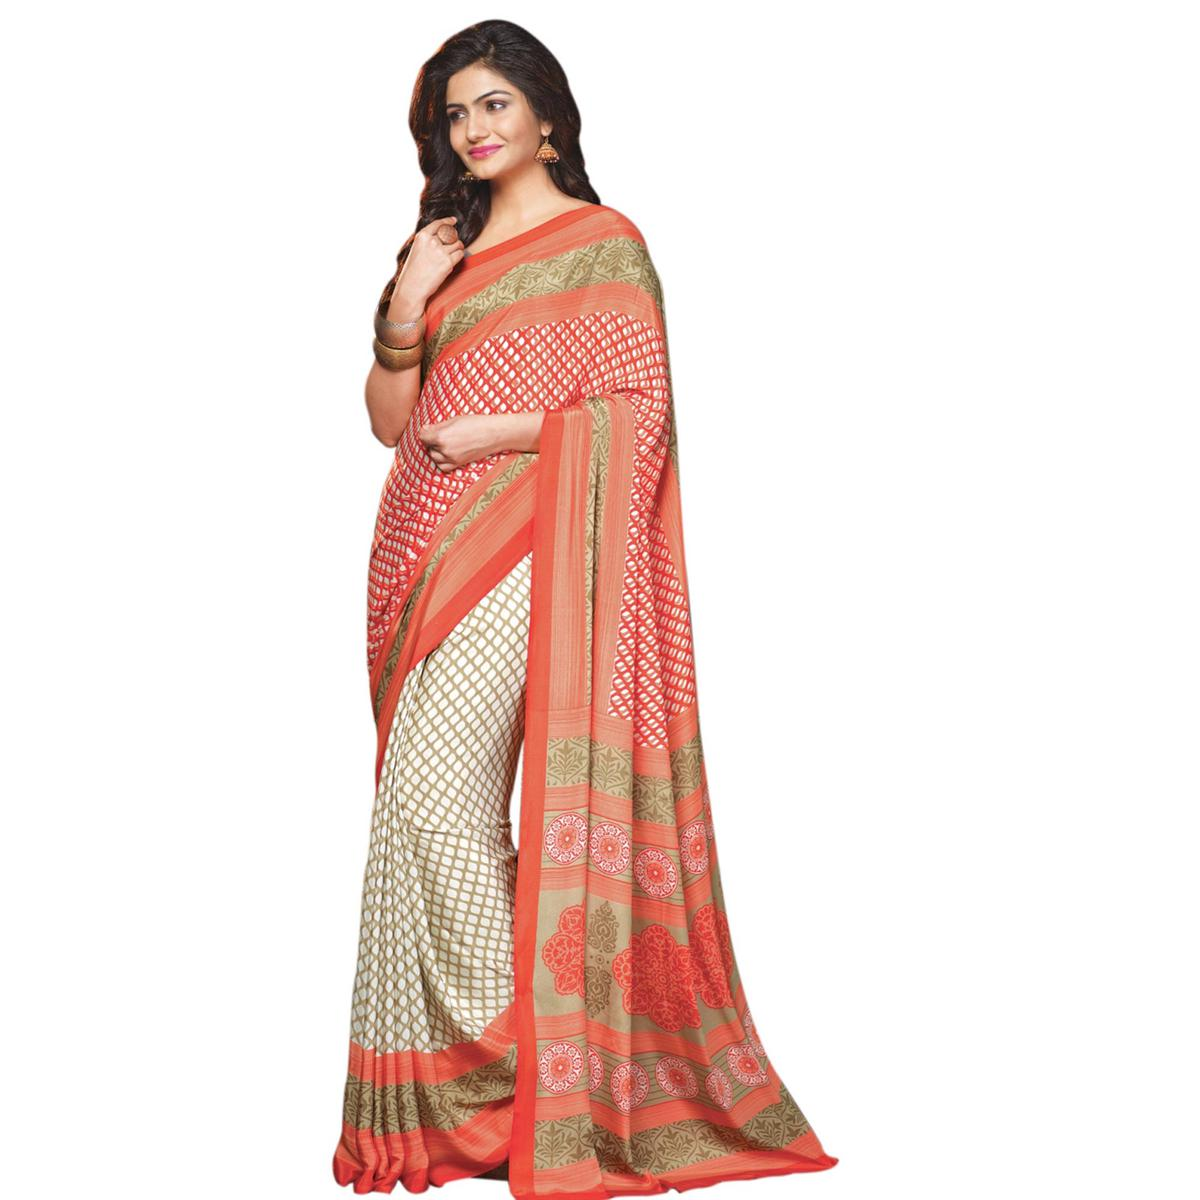 Attractive White-Peach Colored Casual Printed Crepe Half-Half Saree